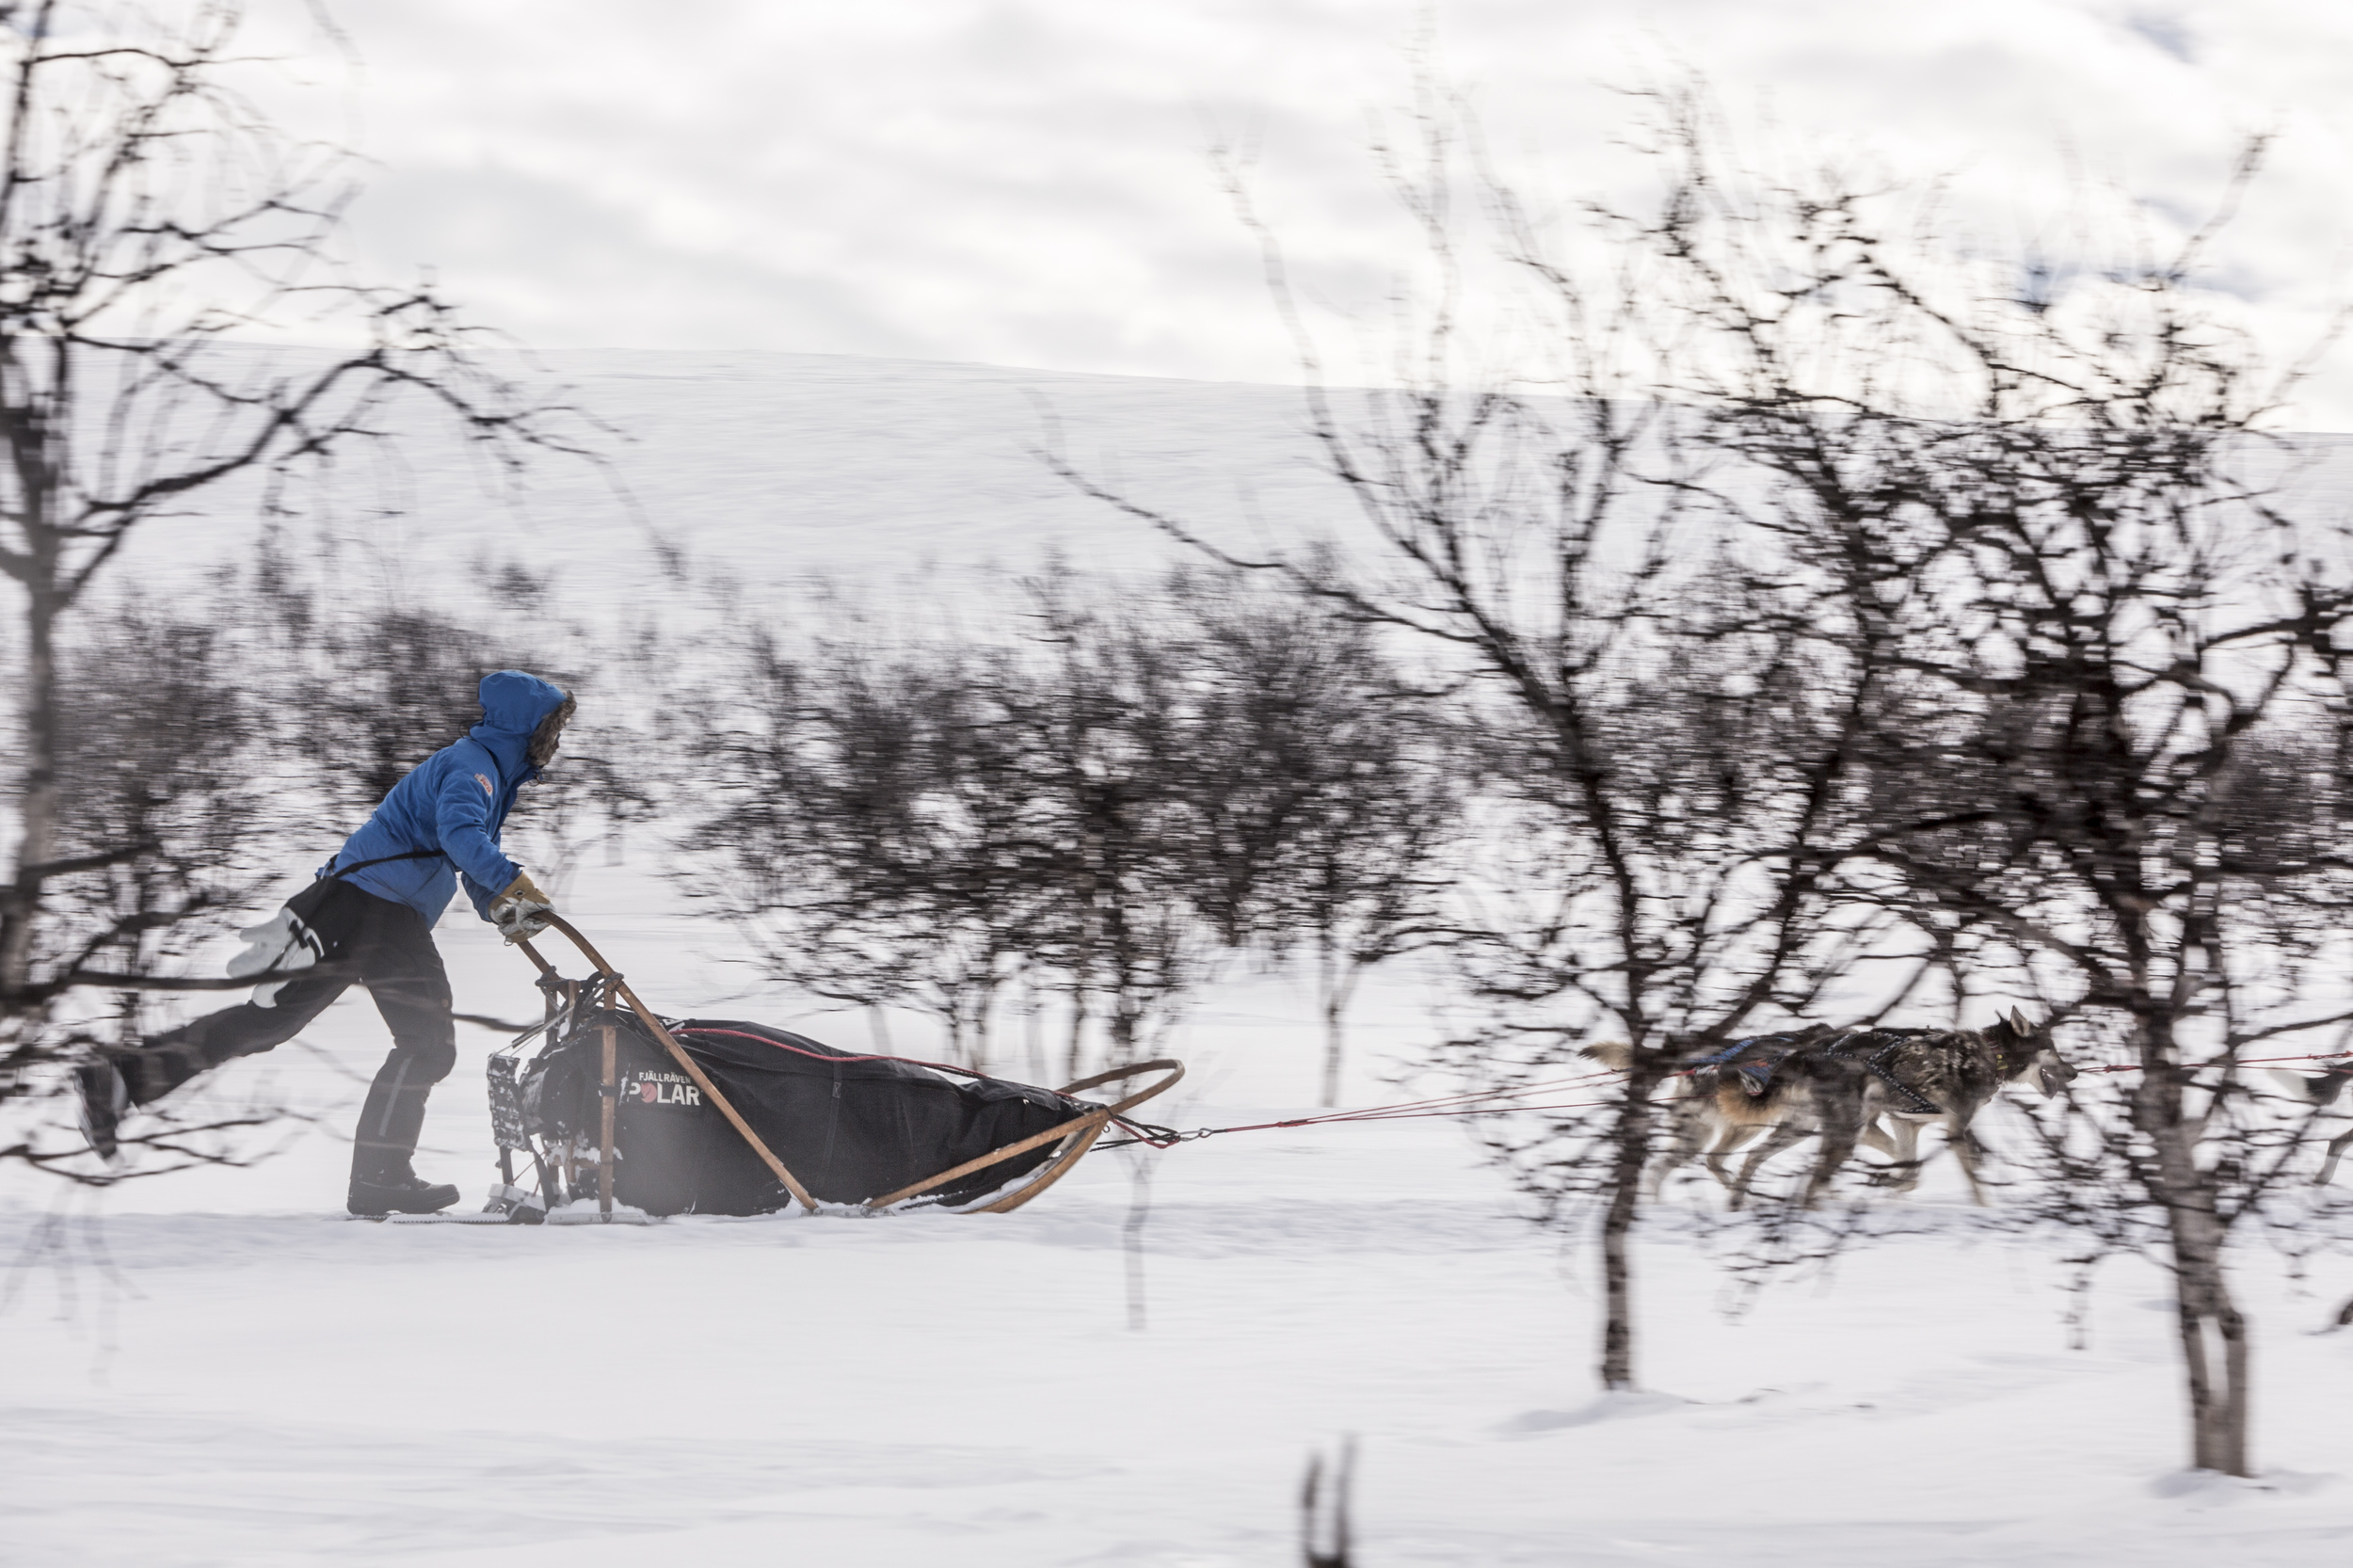 There's no gentle acceleration on a dog sled. Once you release the hard brake, you pick up speed fast. (Photo by Håkan Wike for Fjällräven International. All rights reserved.)